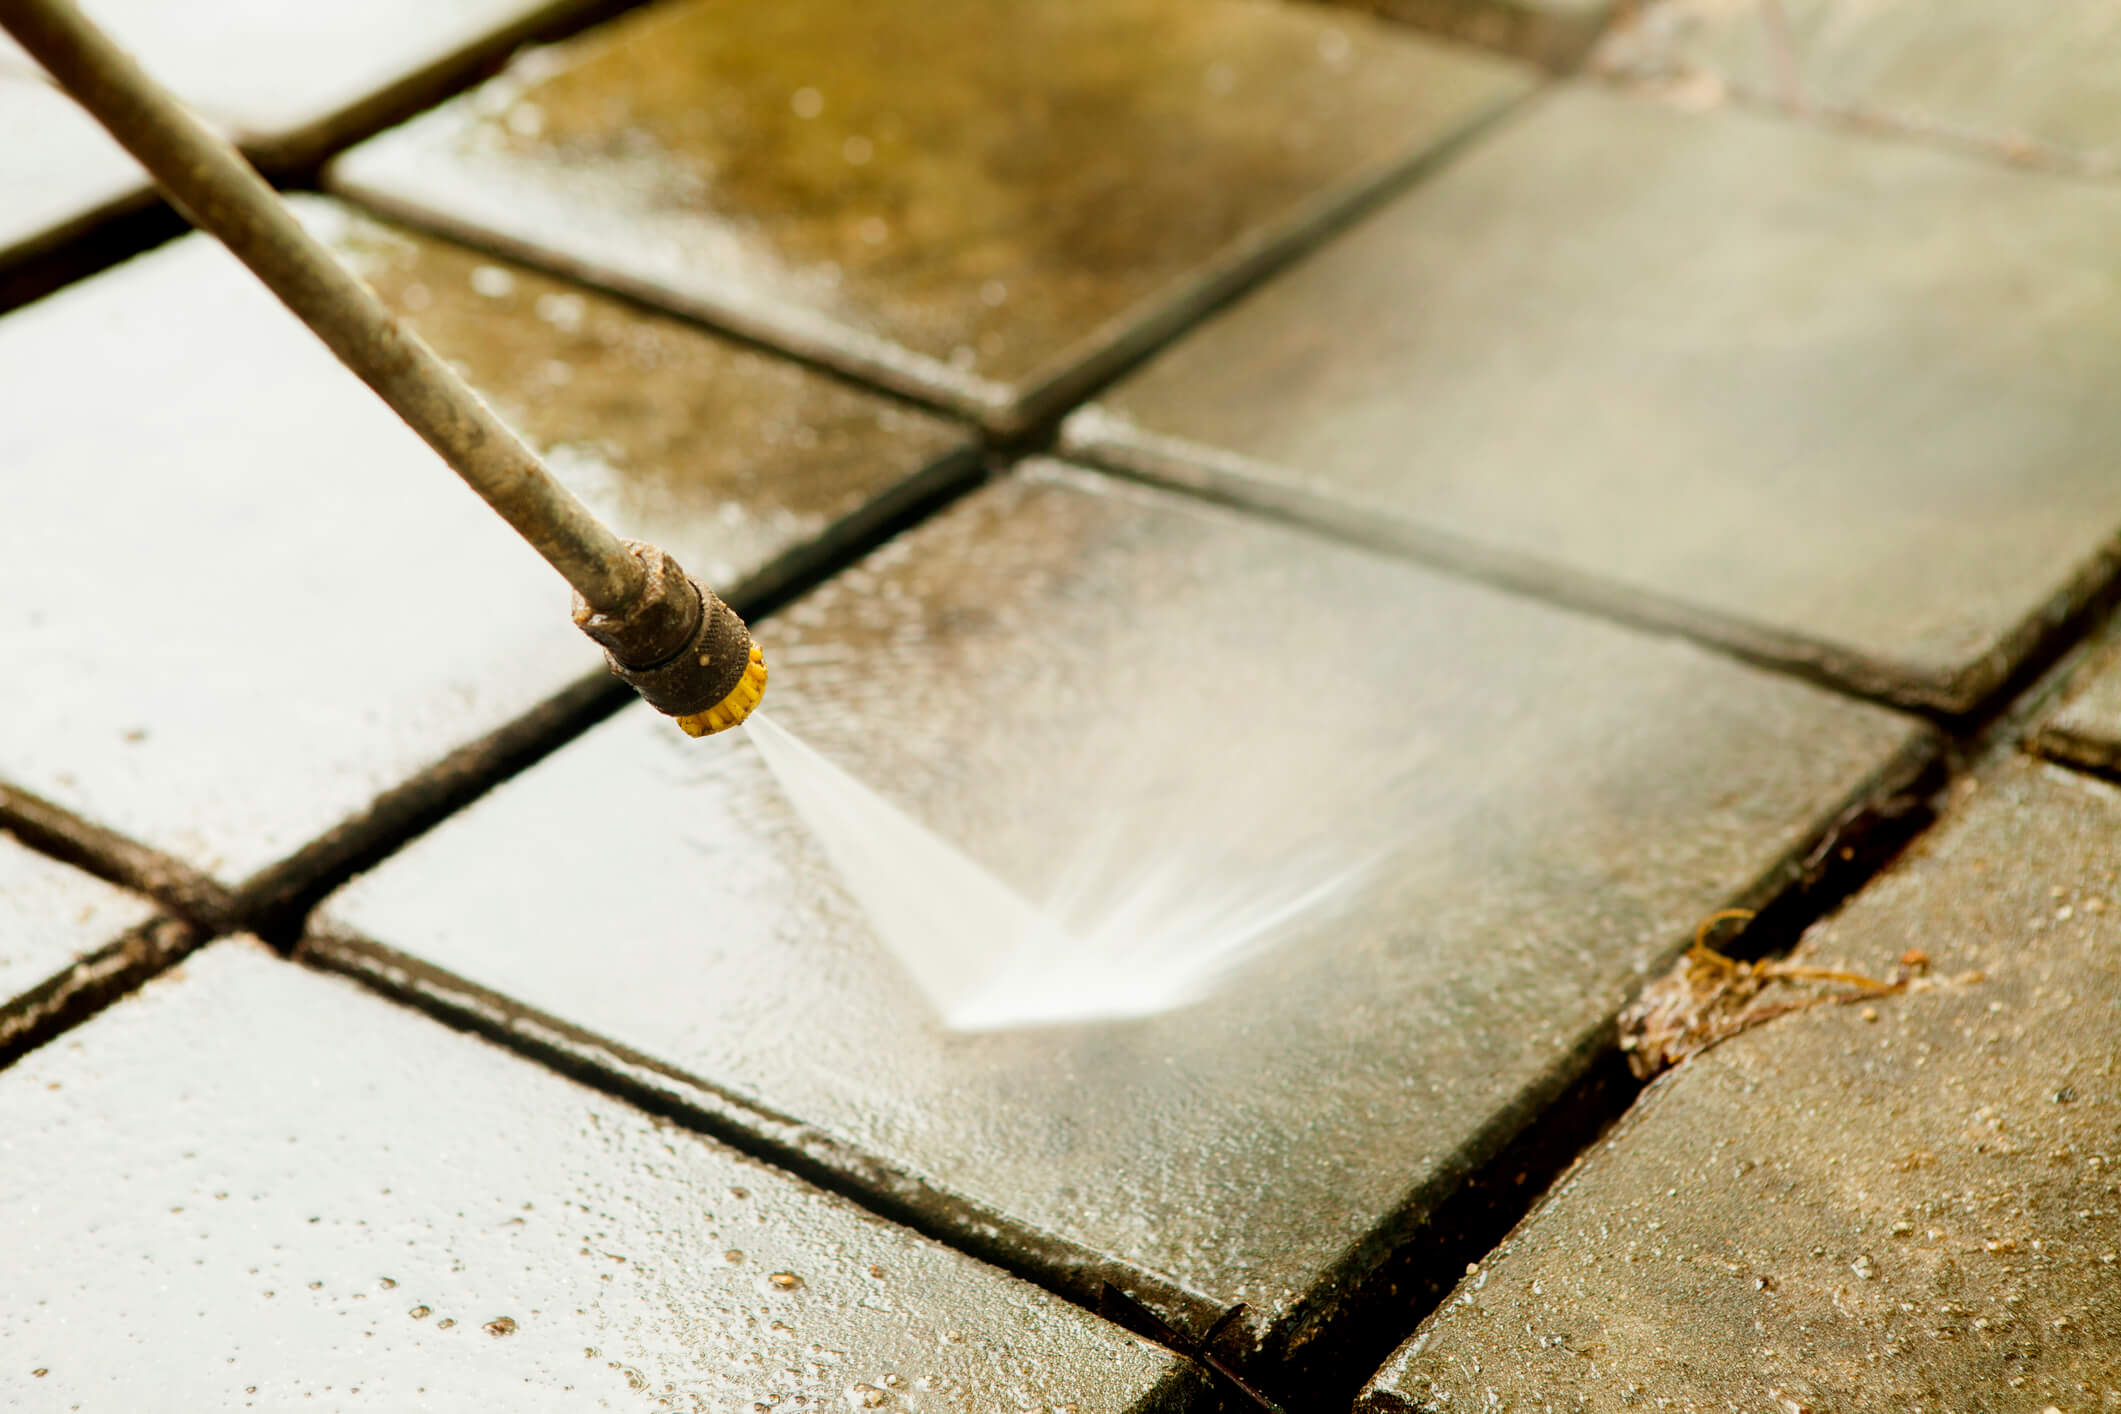 Cleaning Concrete Surfaces with Biodegradable, Eco-Friendly Solutions